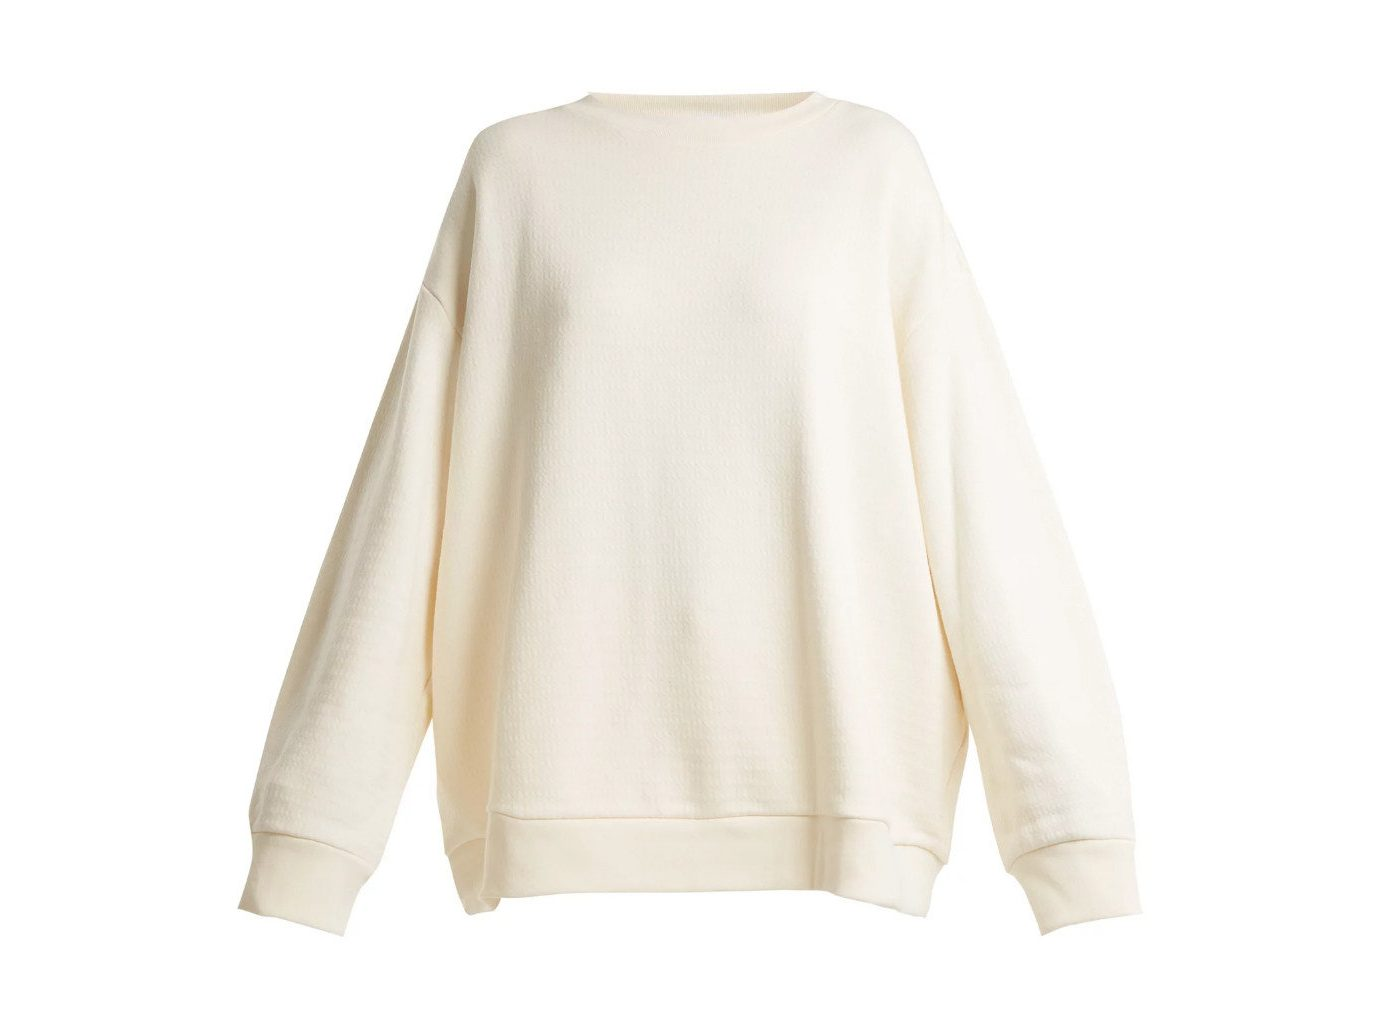 Style + Design Travel Shop sleeve shoulder neck sweater beige long sleeved t shirt